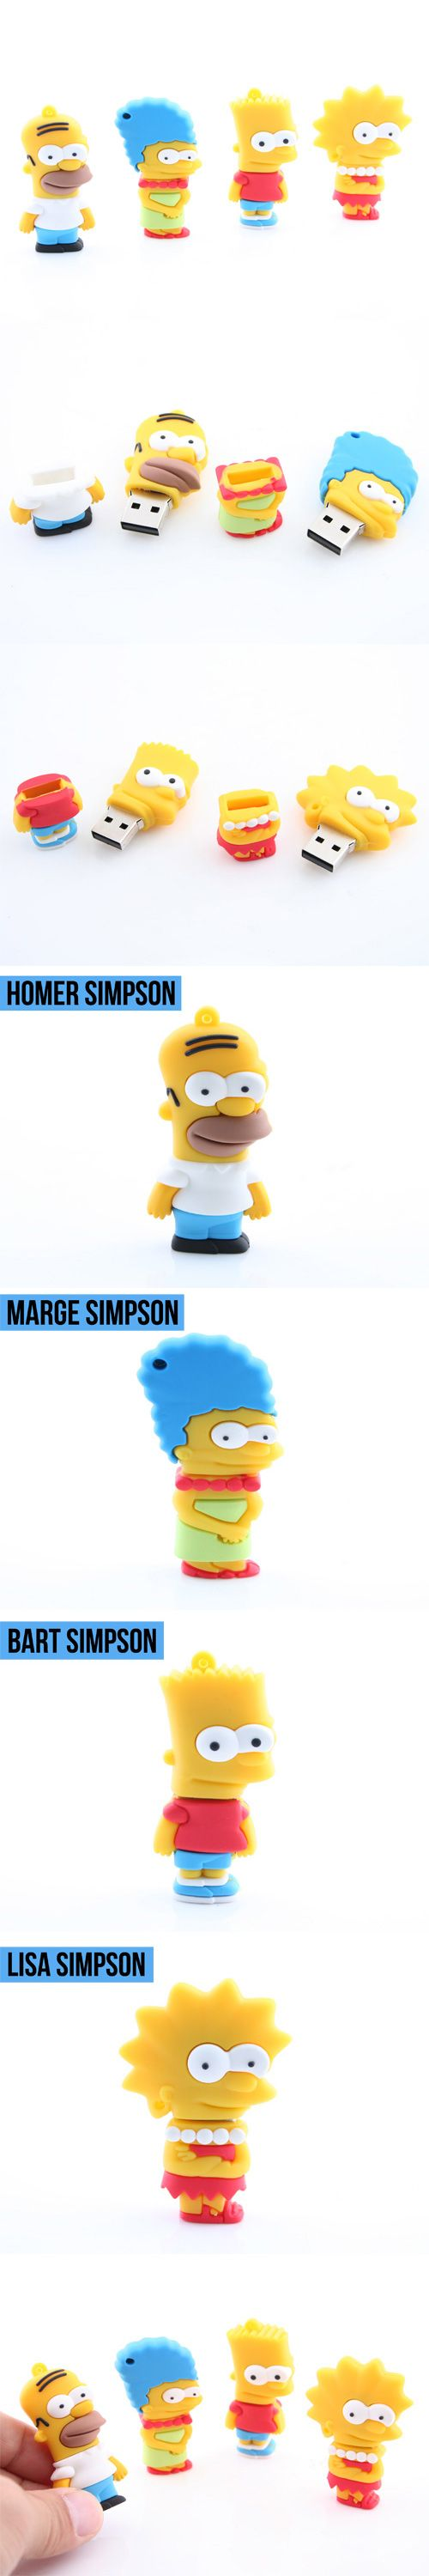 The Simpsons USB Drive II http://www.usbgeek.com/products/the-simpsons-usb-drive-ii